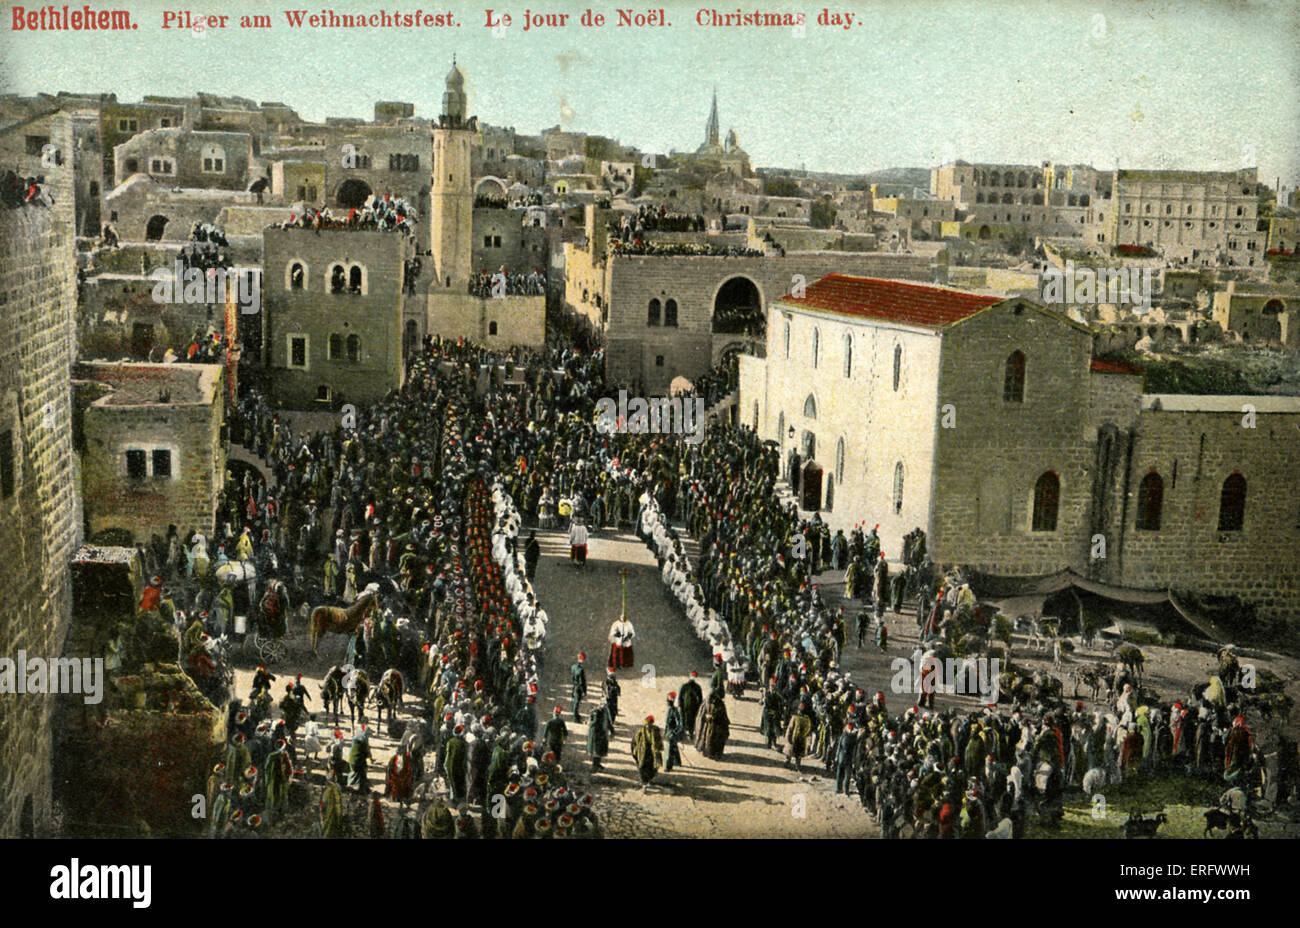 Christmas day in Bethlehem, late 1800s, early 1900s. Pilgrims watch procession to the Church of the Nativity. - Stock Image